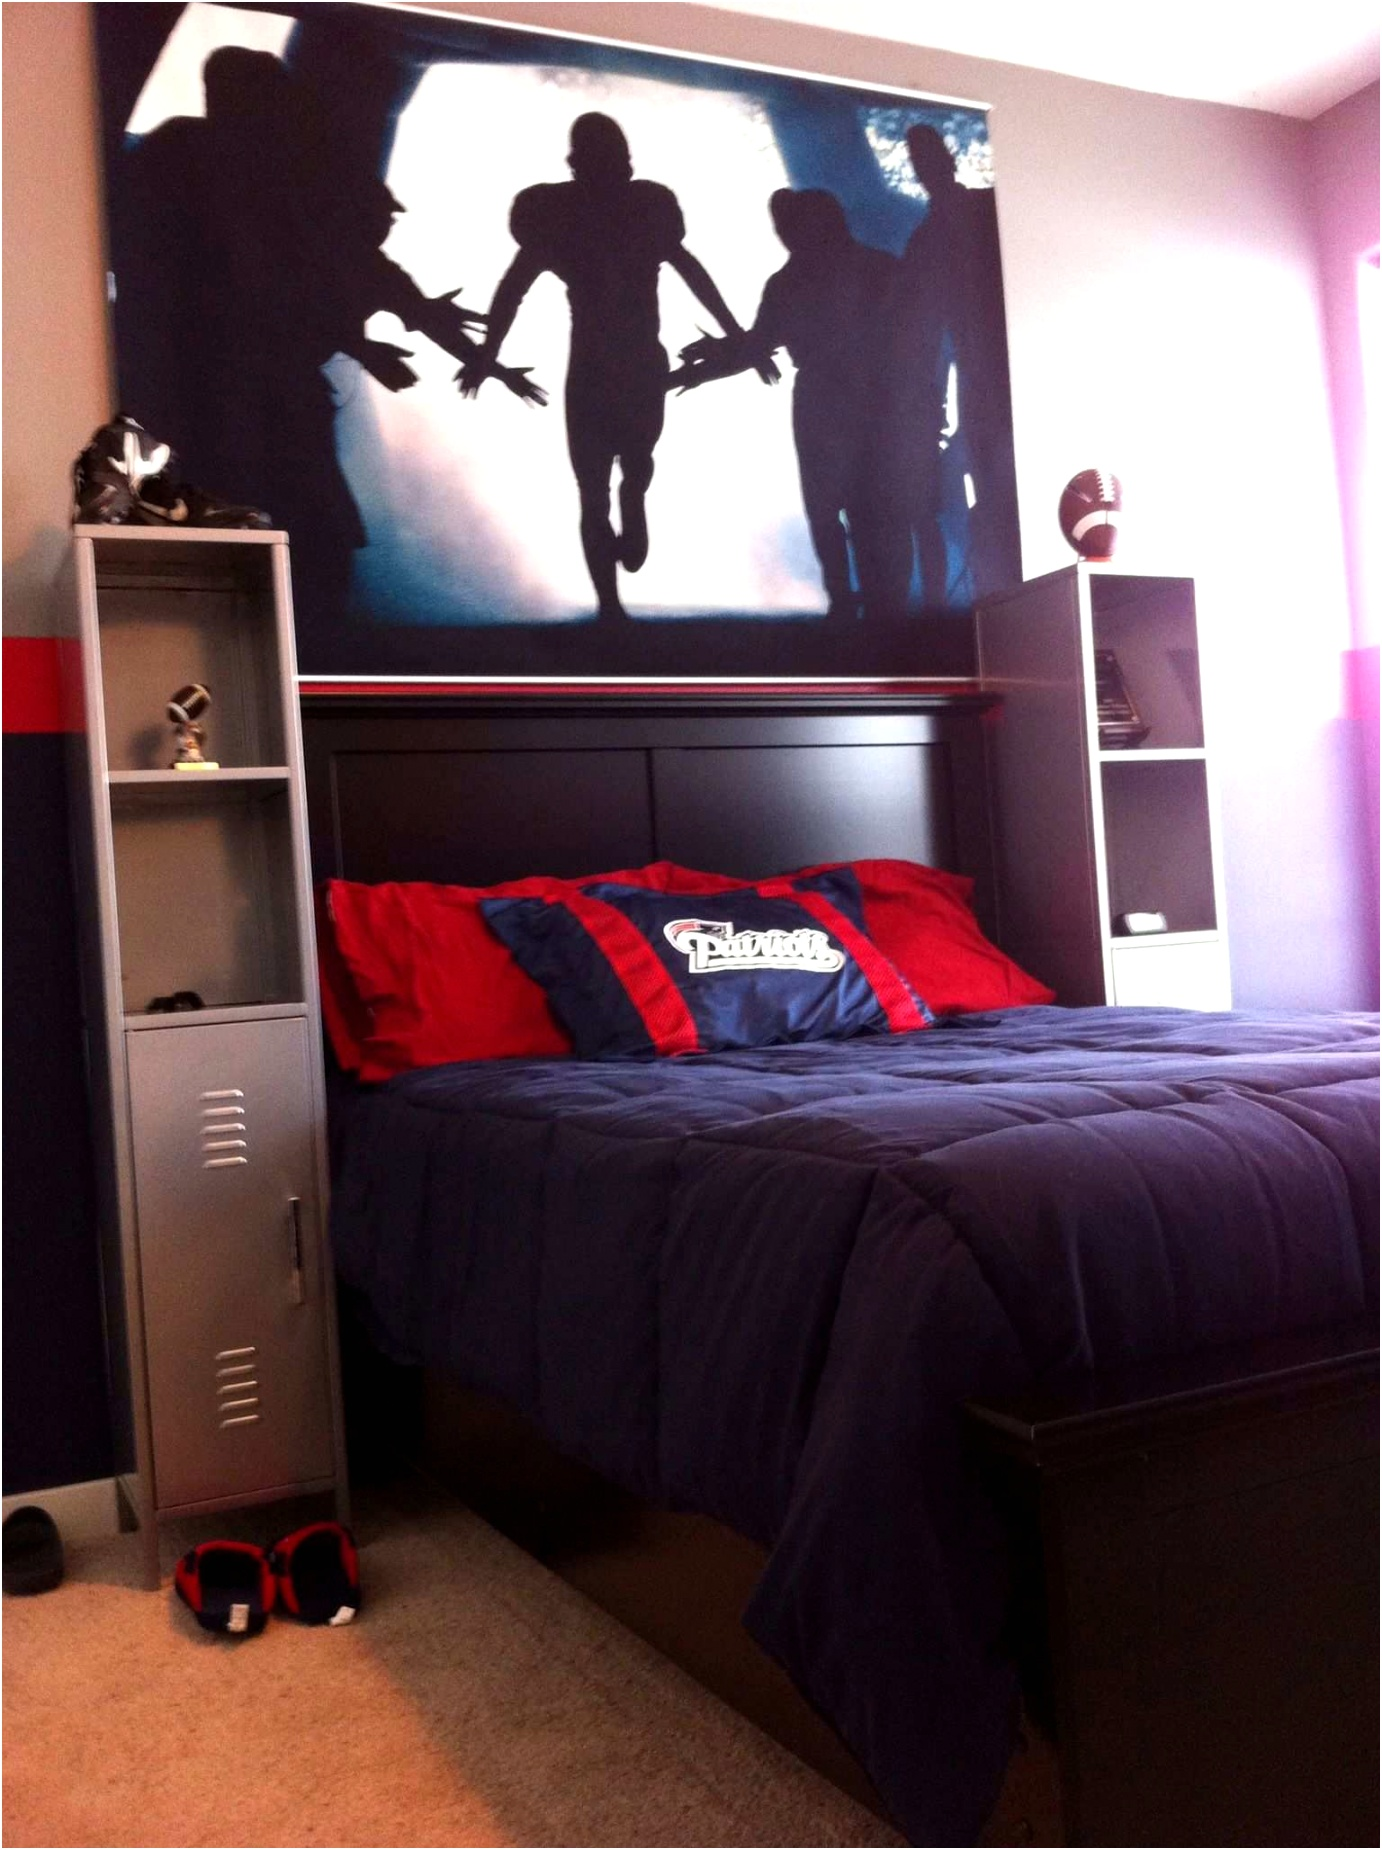 glamorous boys sports room ideas bedroom inspiration for parker39s baseball bedroom love of family ideas glamorous sports room boys bedroom